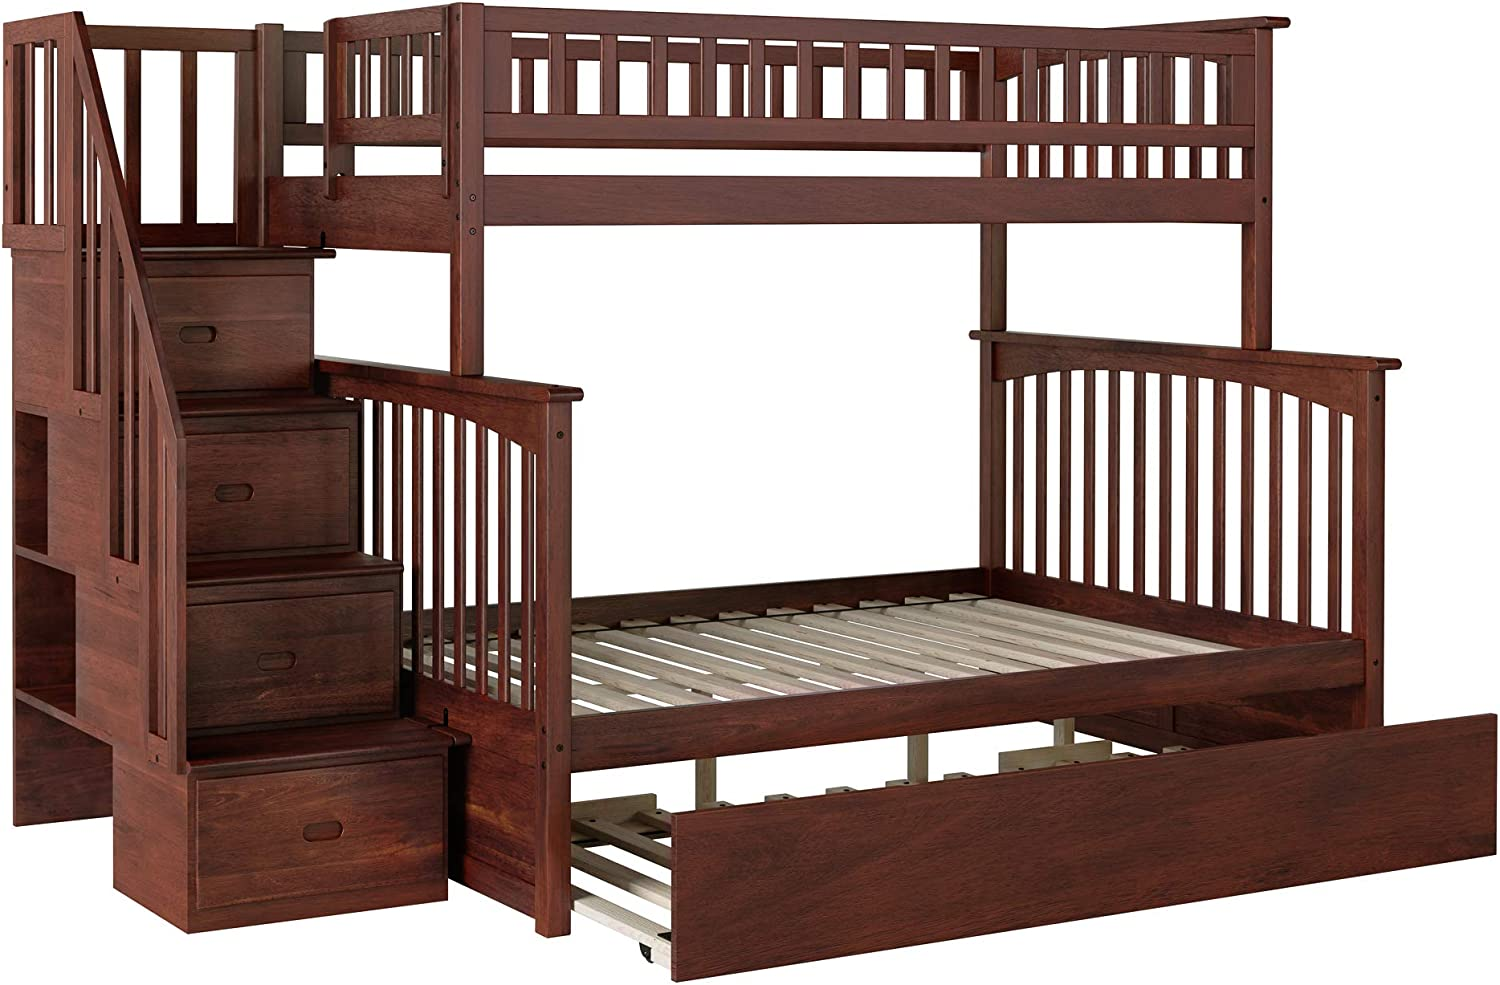 Atlantic Furniture - Cama Nido para Escalera con Cama Nido (tamaño Grande, Color Nogal): Amazon.es: Juguetes y juegos